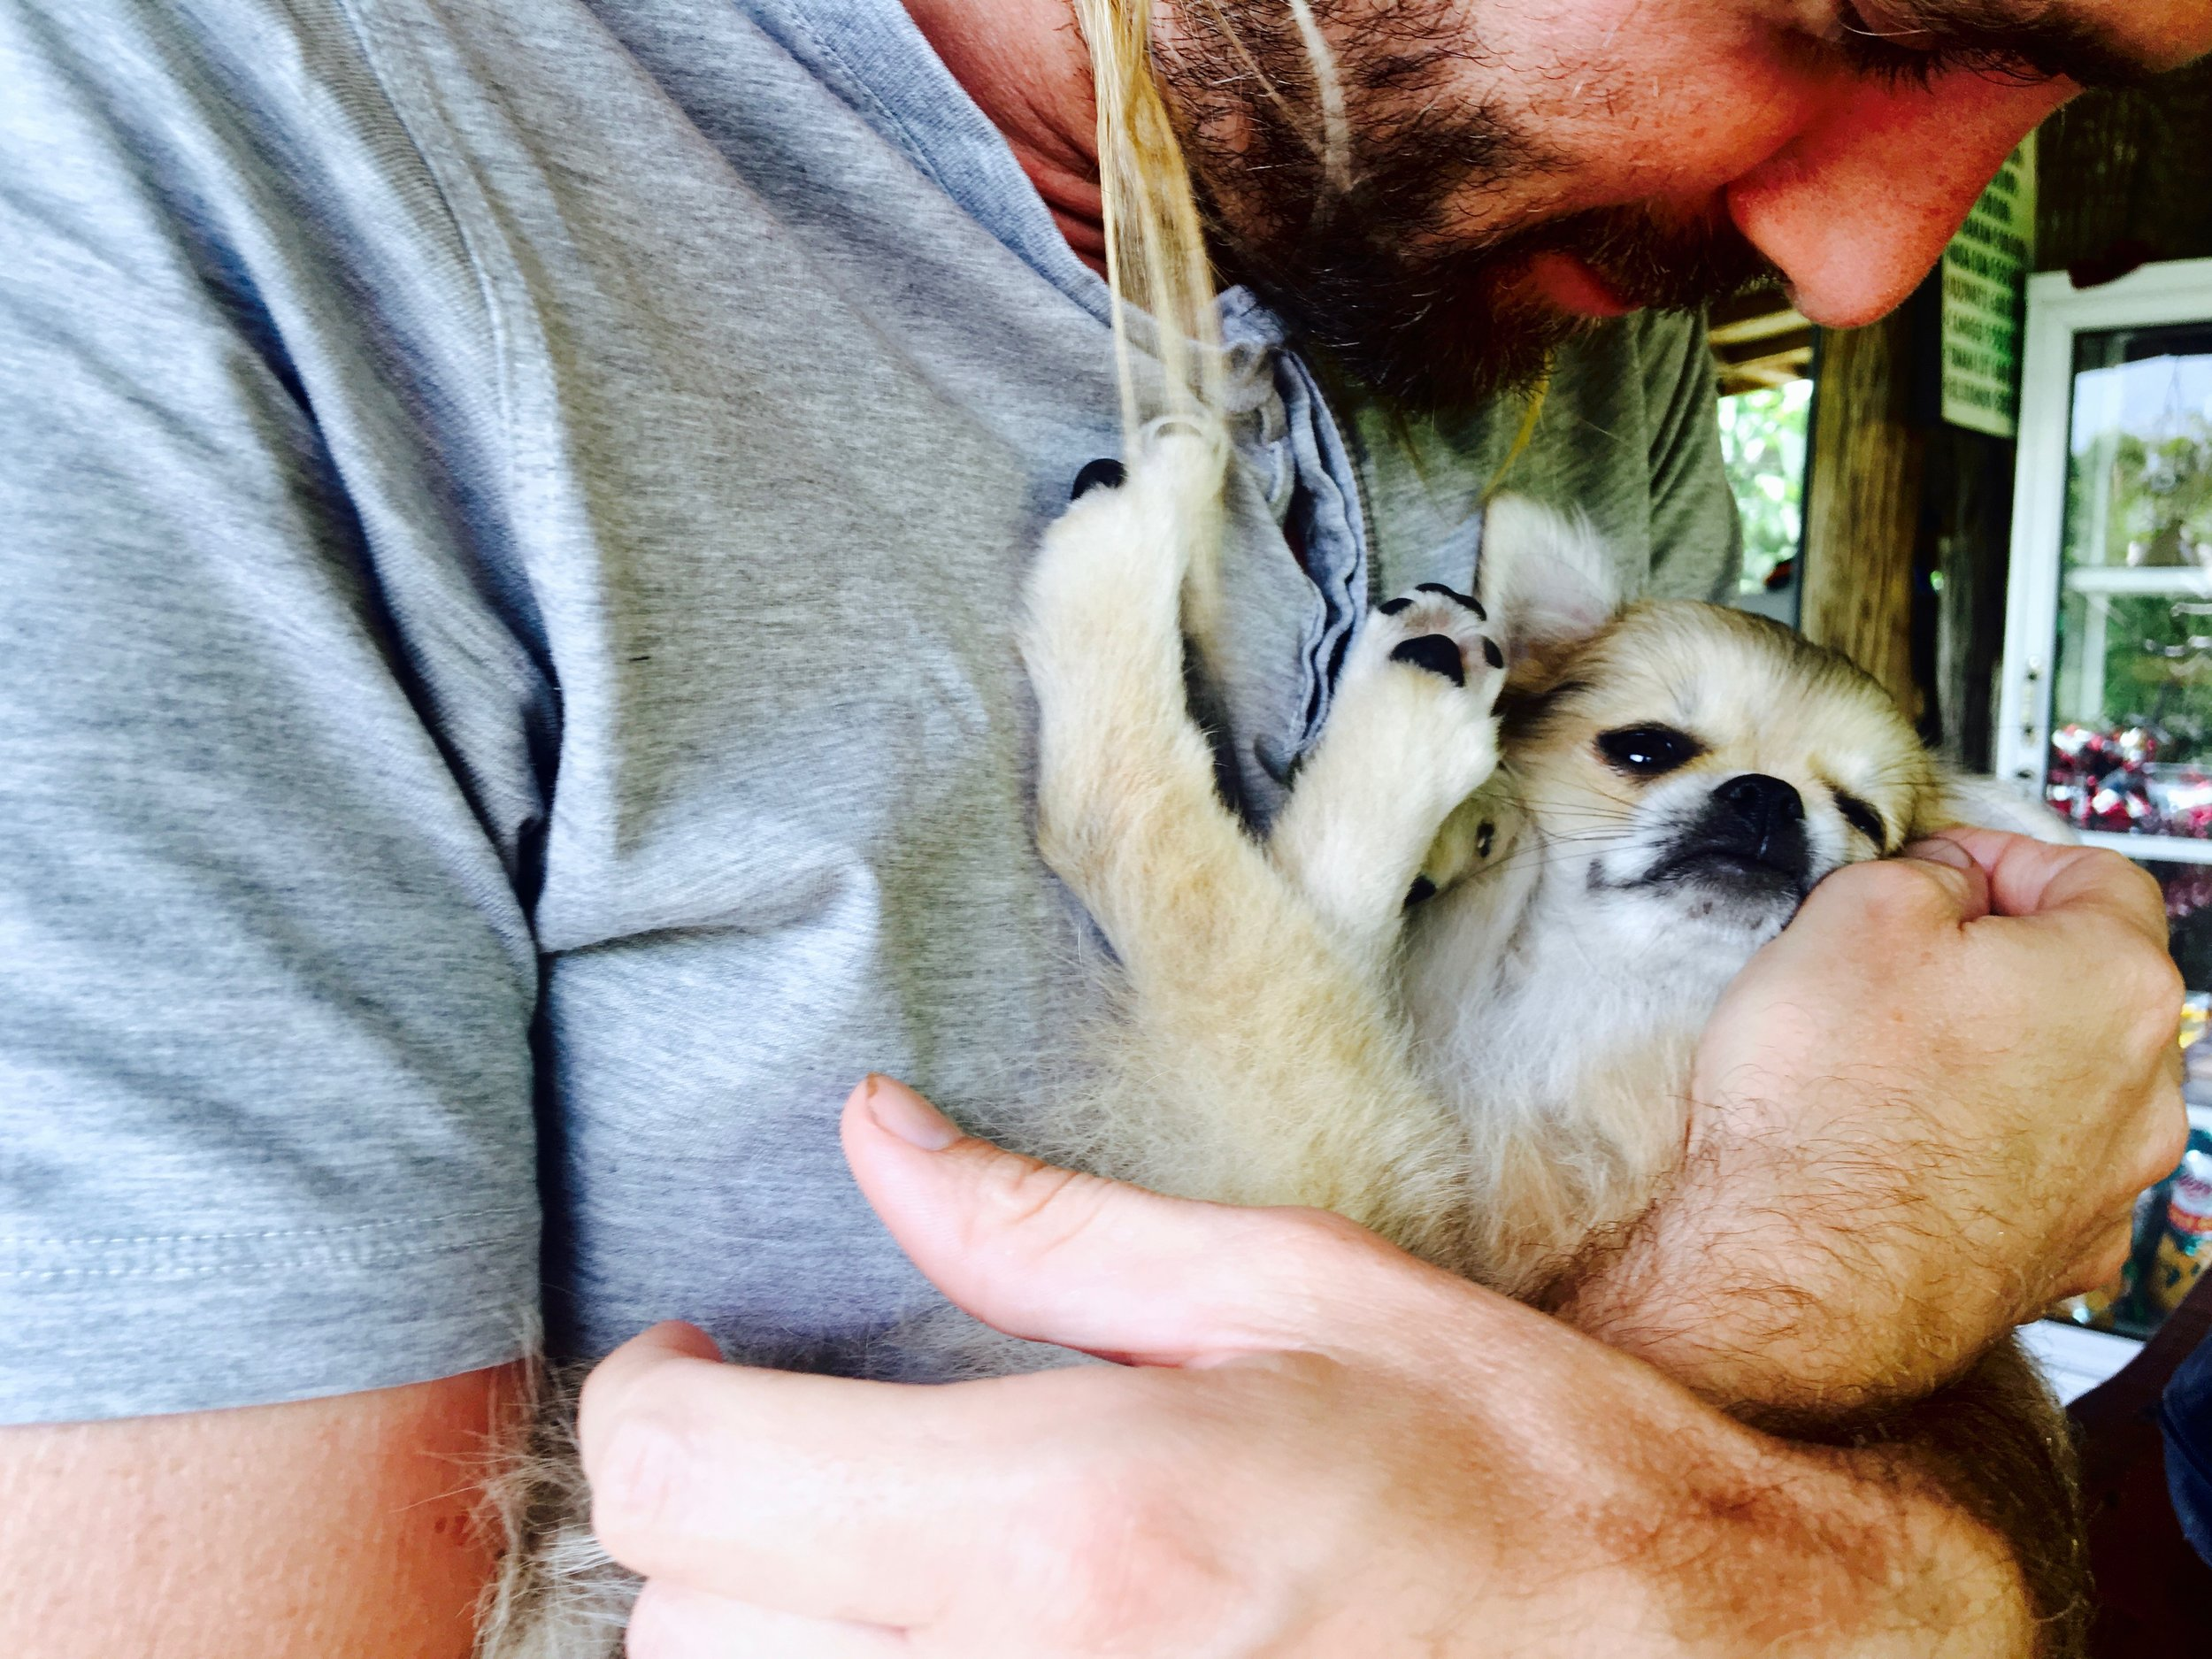 Cuddling a puppy before making a long motorbike trek = therapy